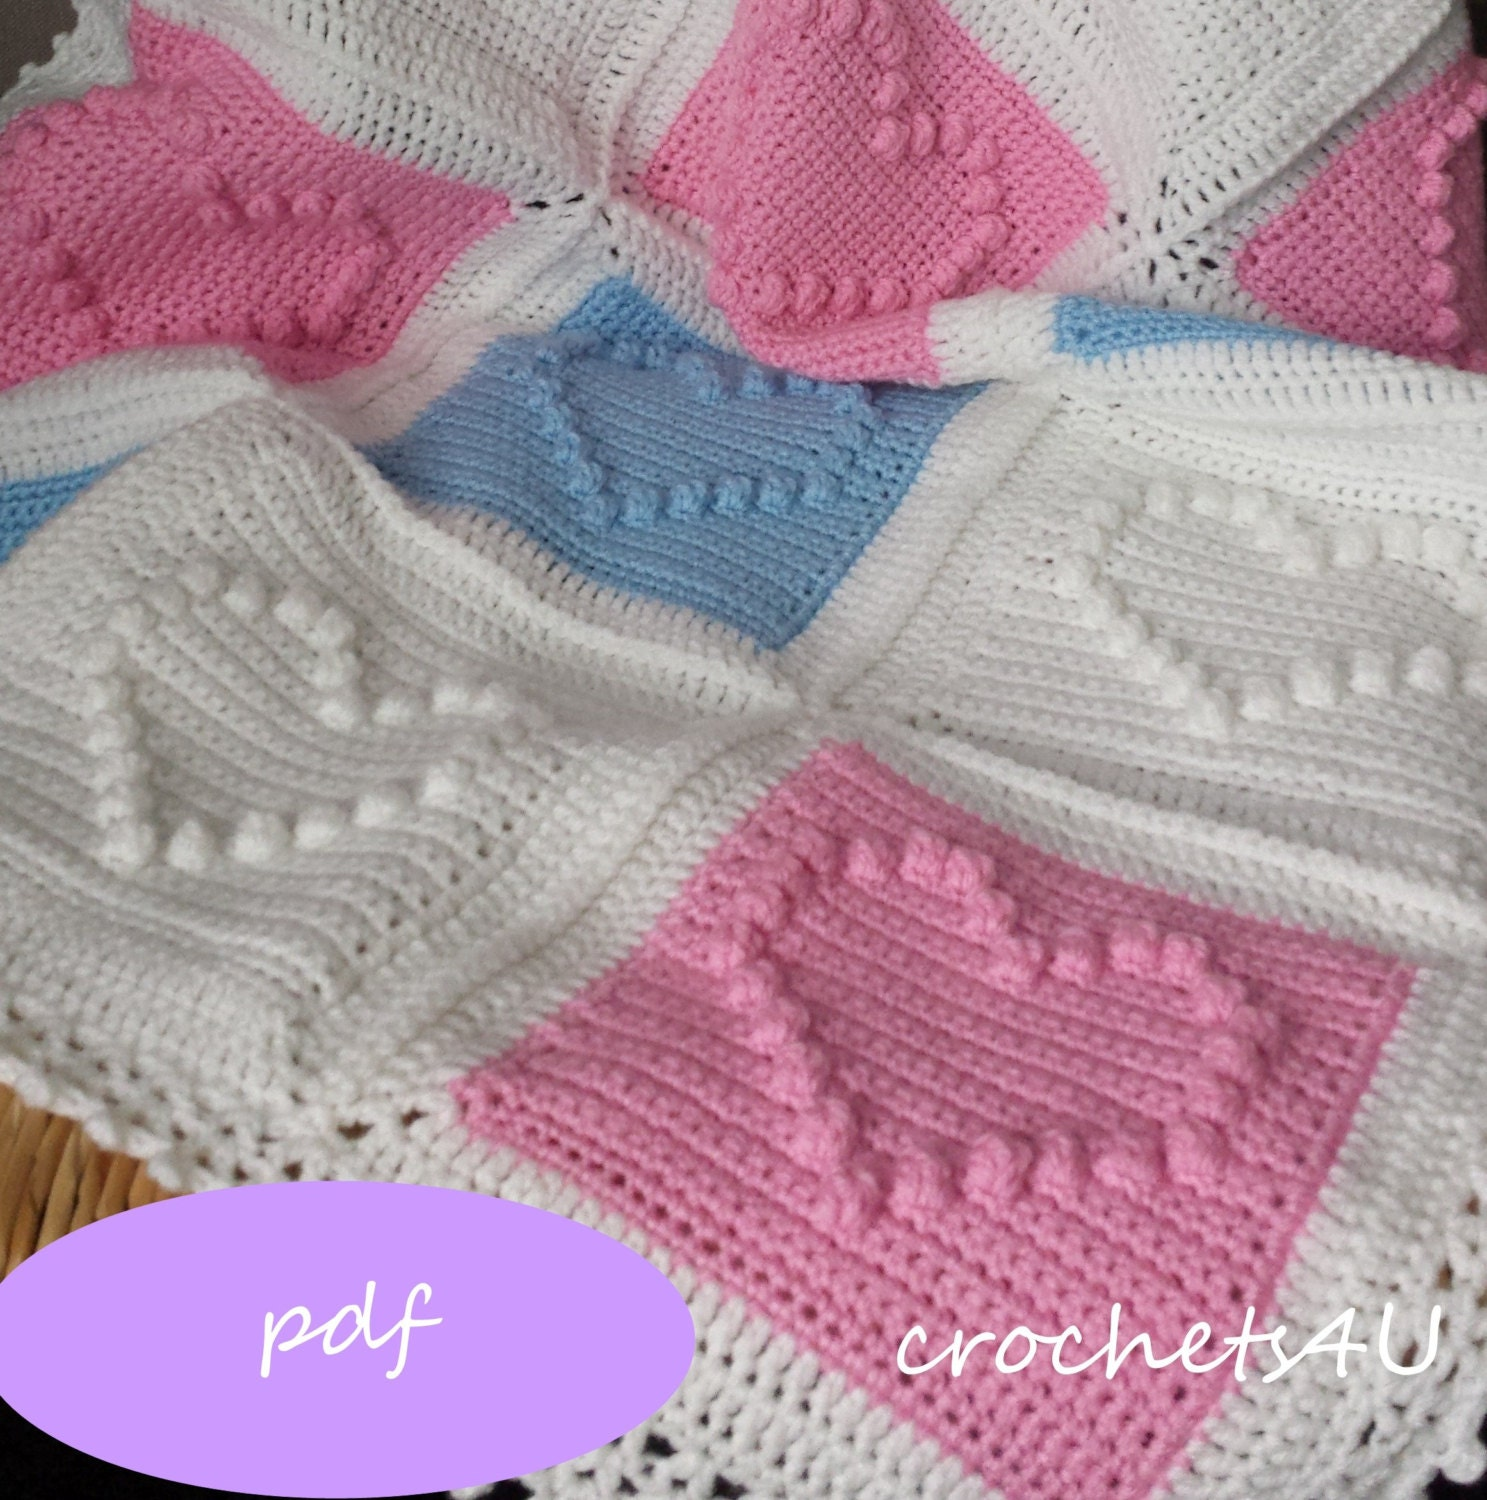 Crochet Afghan Patterns With Hearts : crochet pattern heart afghan crochet blanket pattern baby